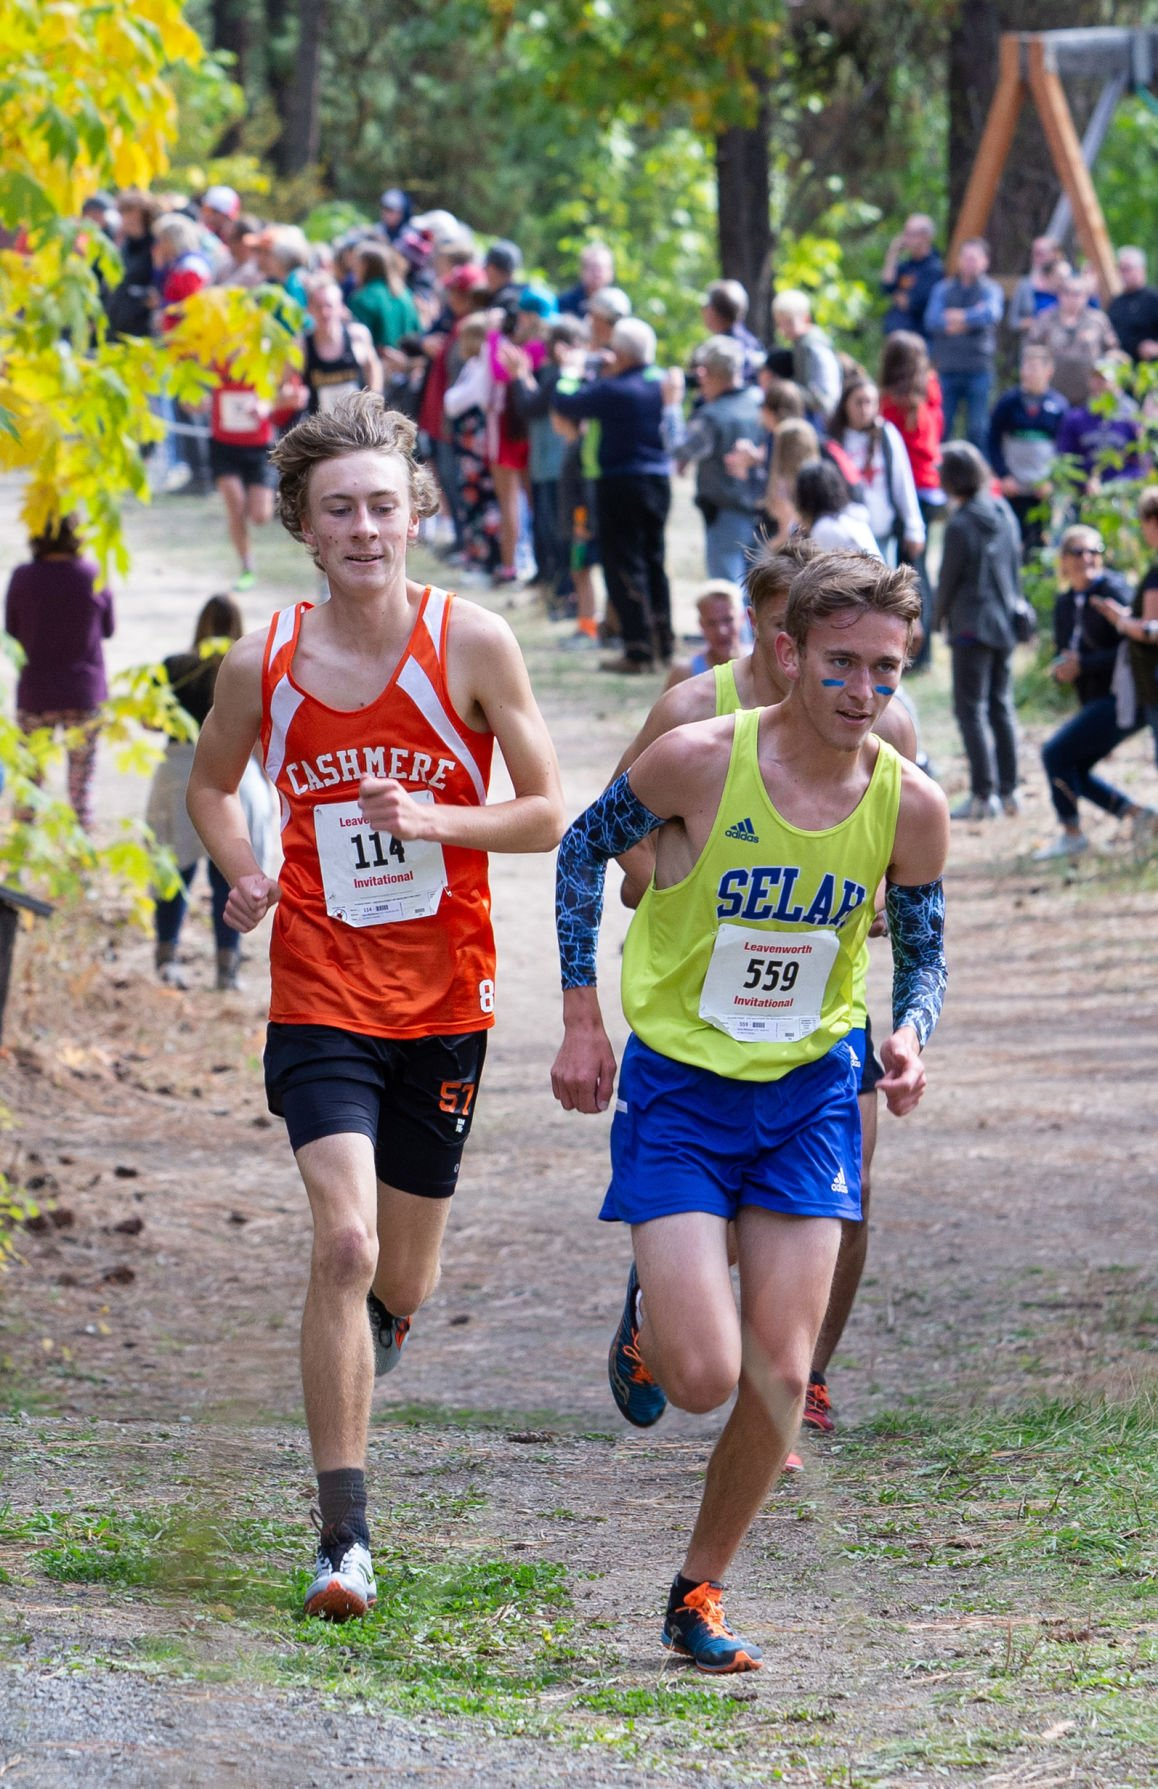 191008-sportslocal-LworthXcountry 01.JPG